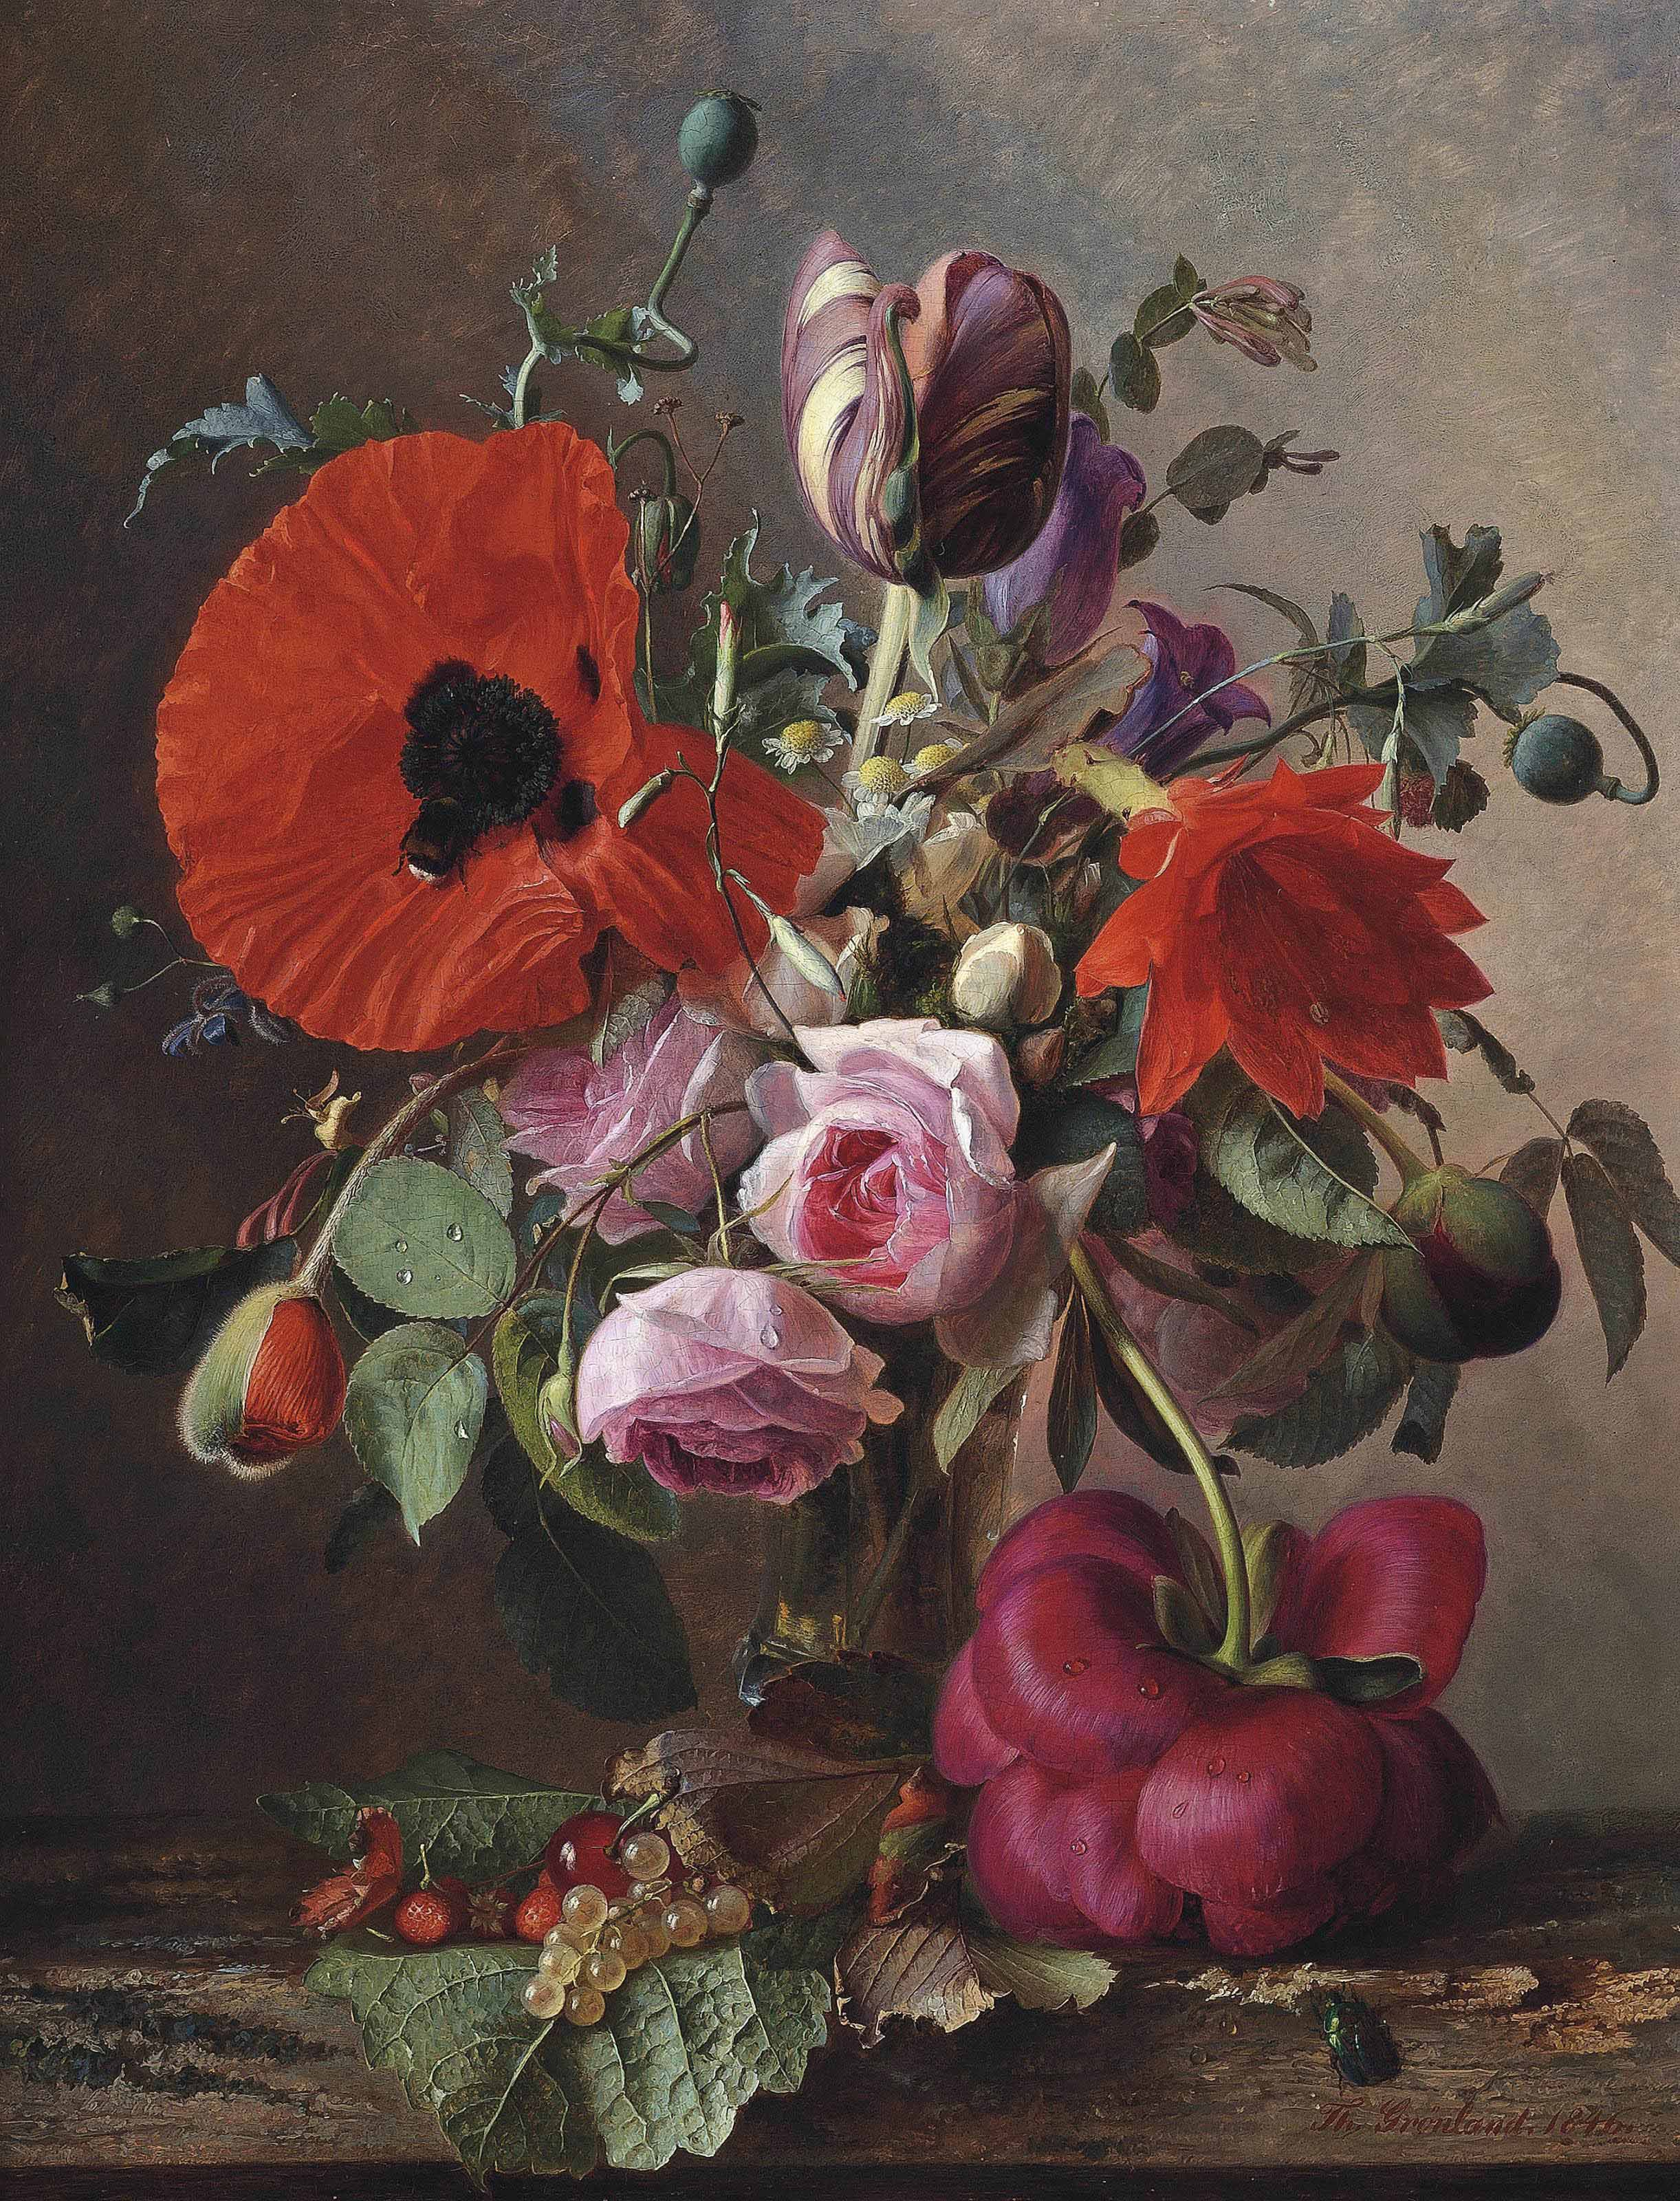 Poppies, tulips and roses in a vase by strawberries and grapes on a wooden shelf